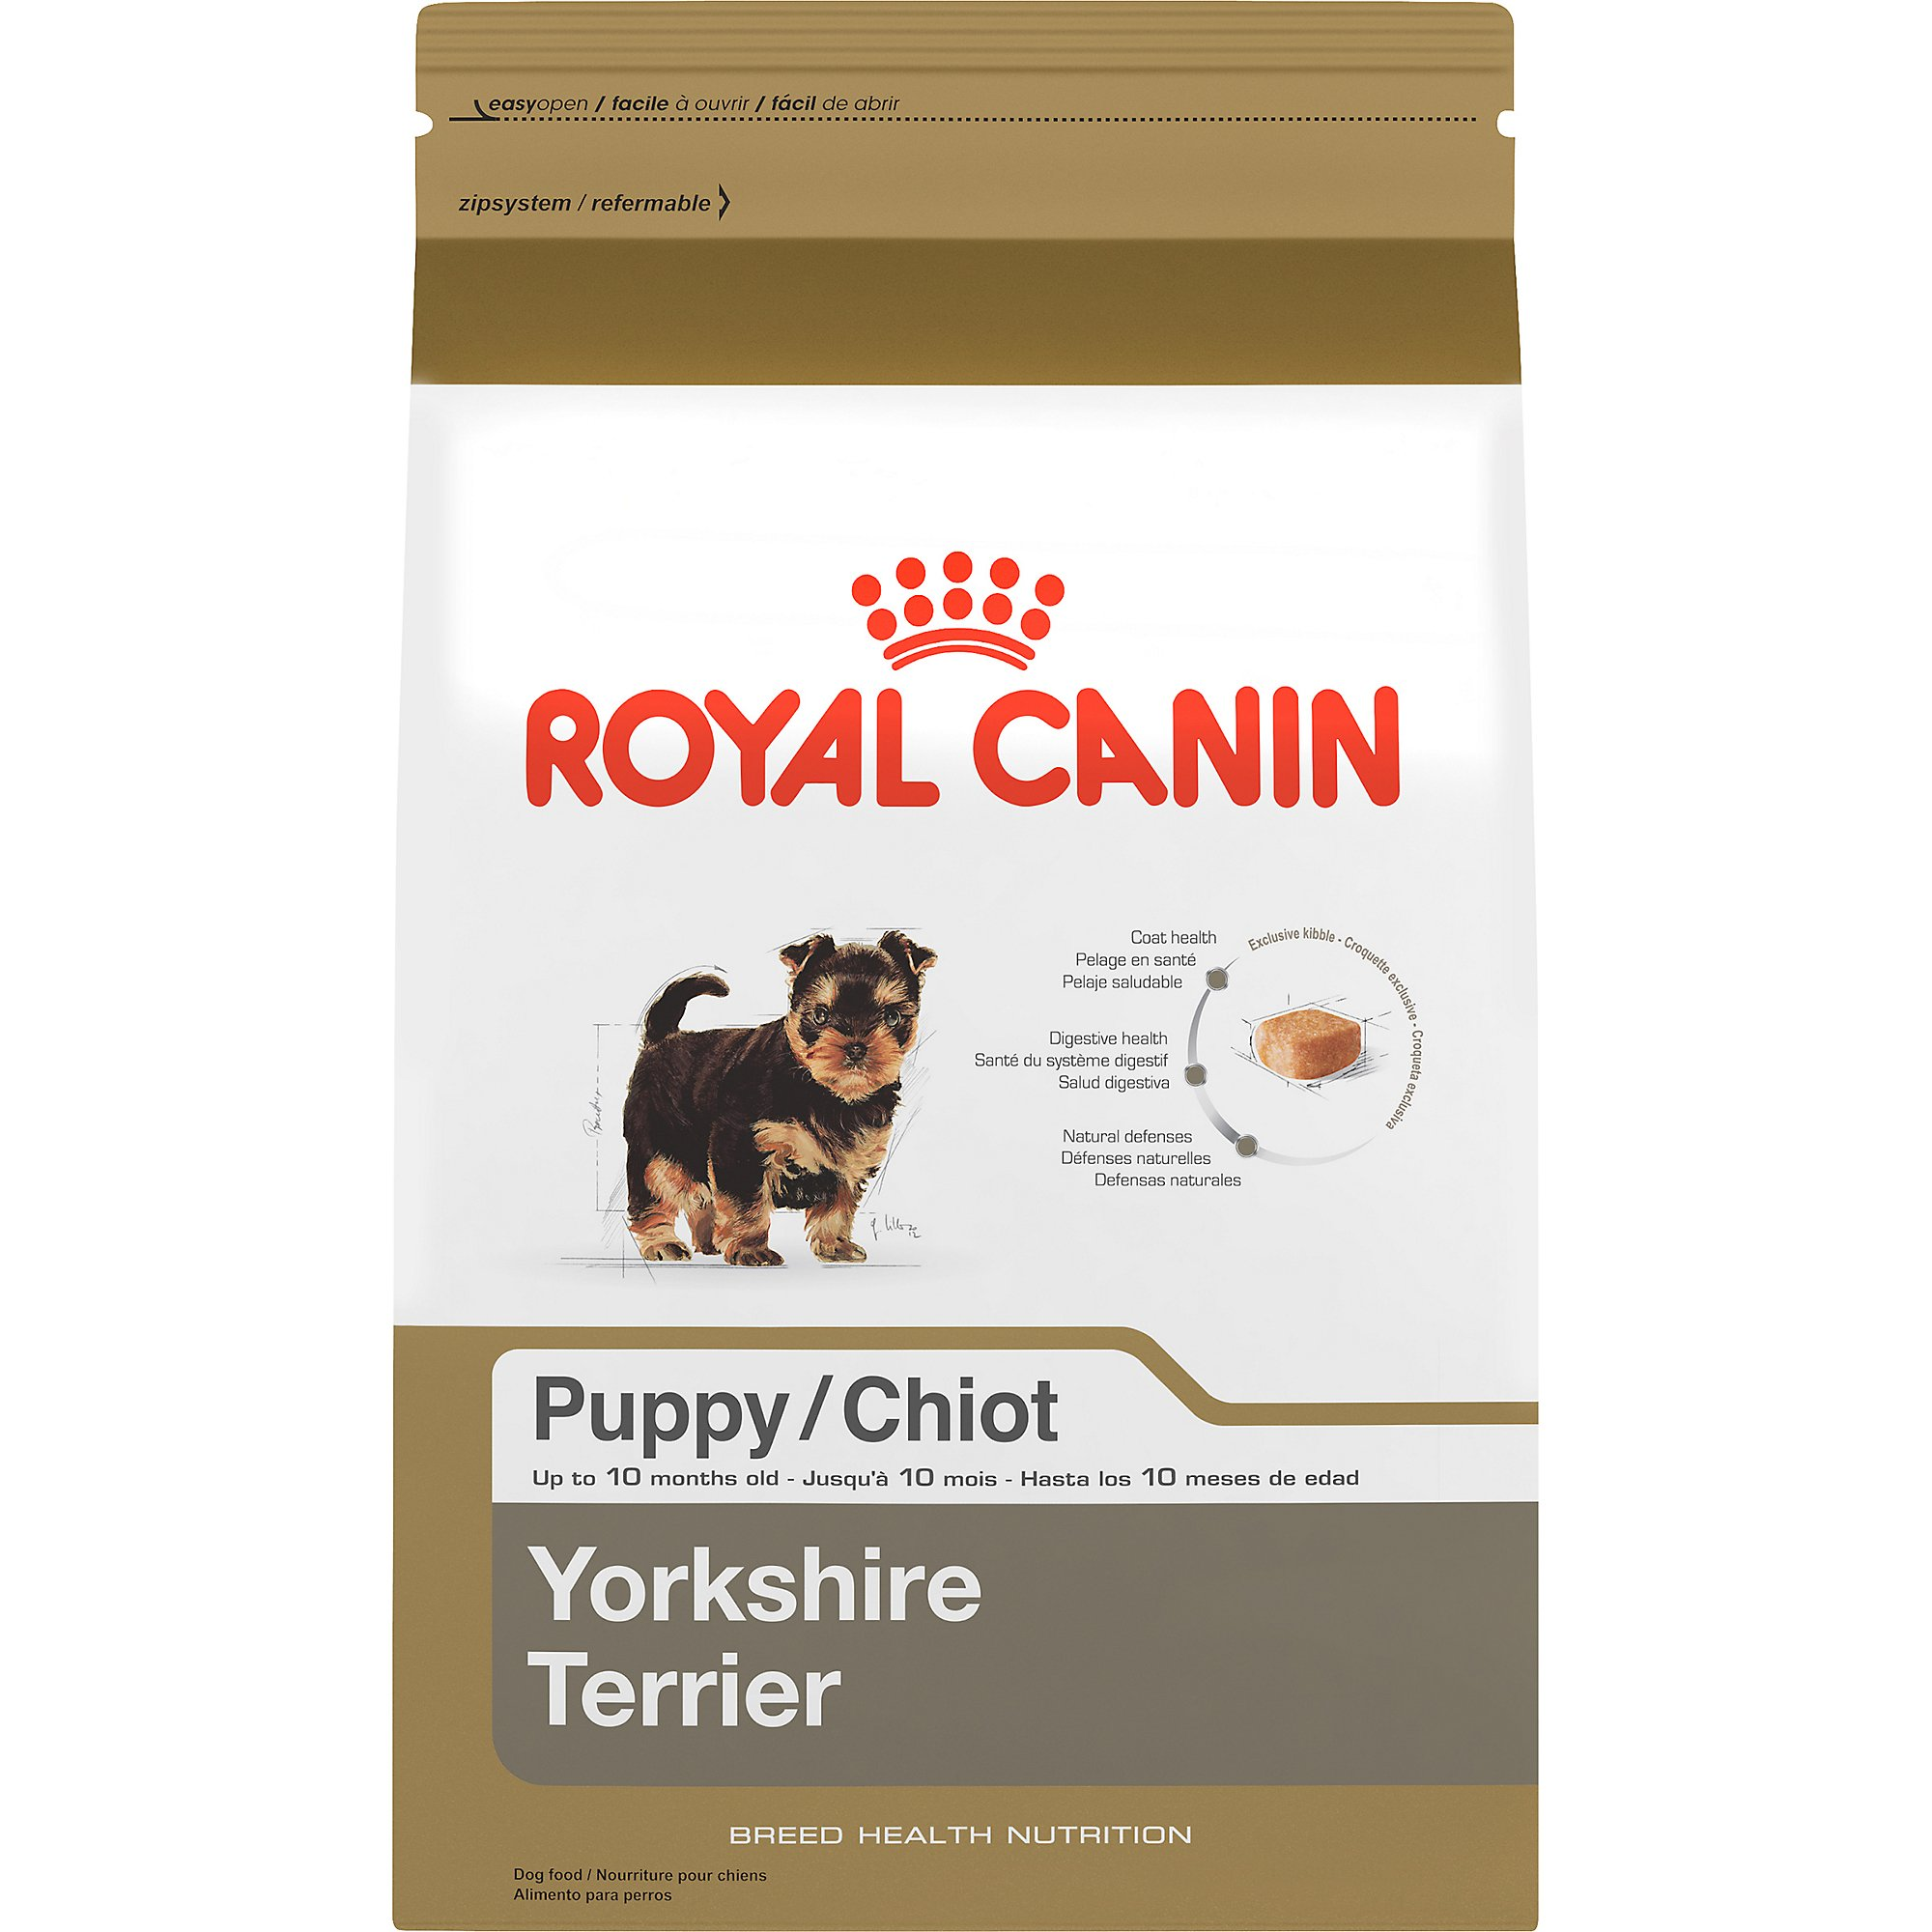 Royal Canin Yorkie Dog Food